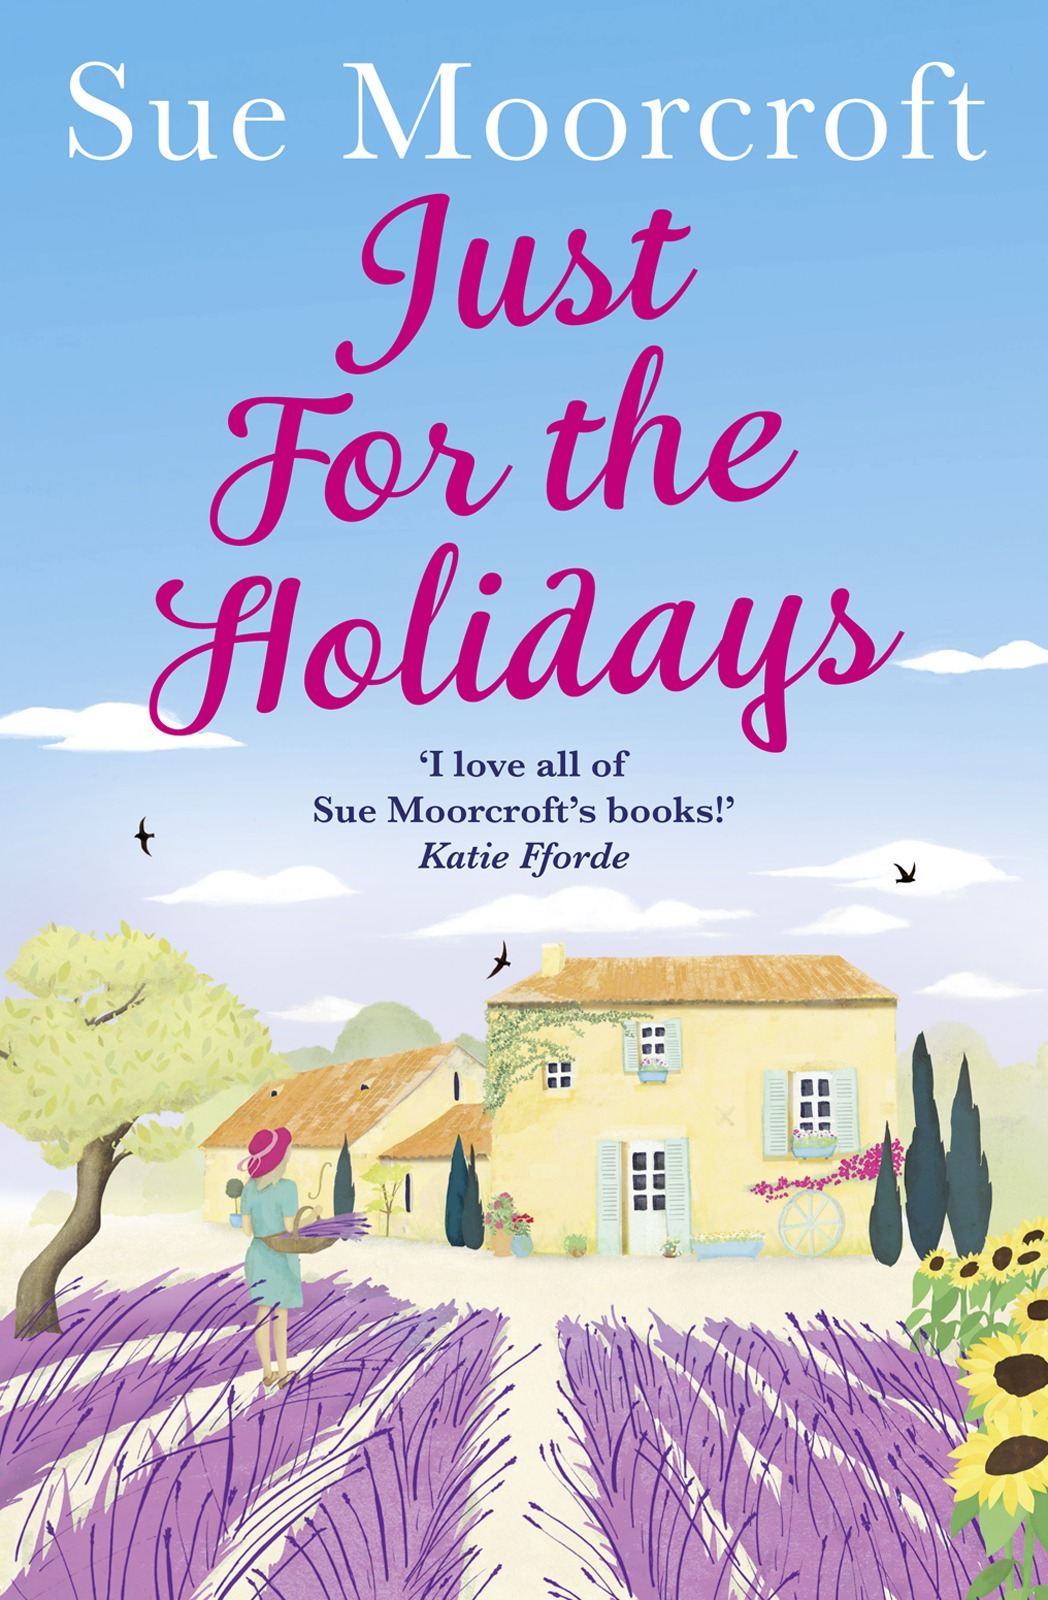 Sue Moorcroft Just for the Holidays: Your perfect summer read! sue moorcroft one summer in italy the most uplifting summer romance you need to read in 2018